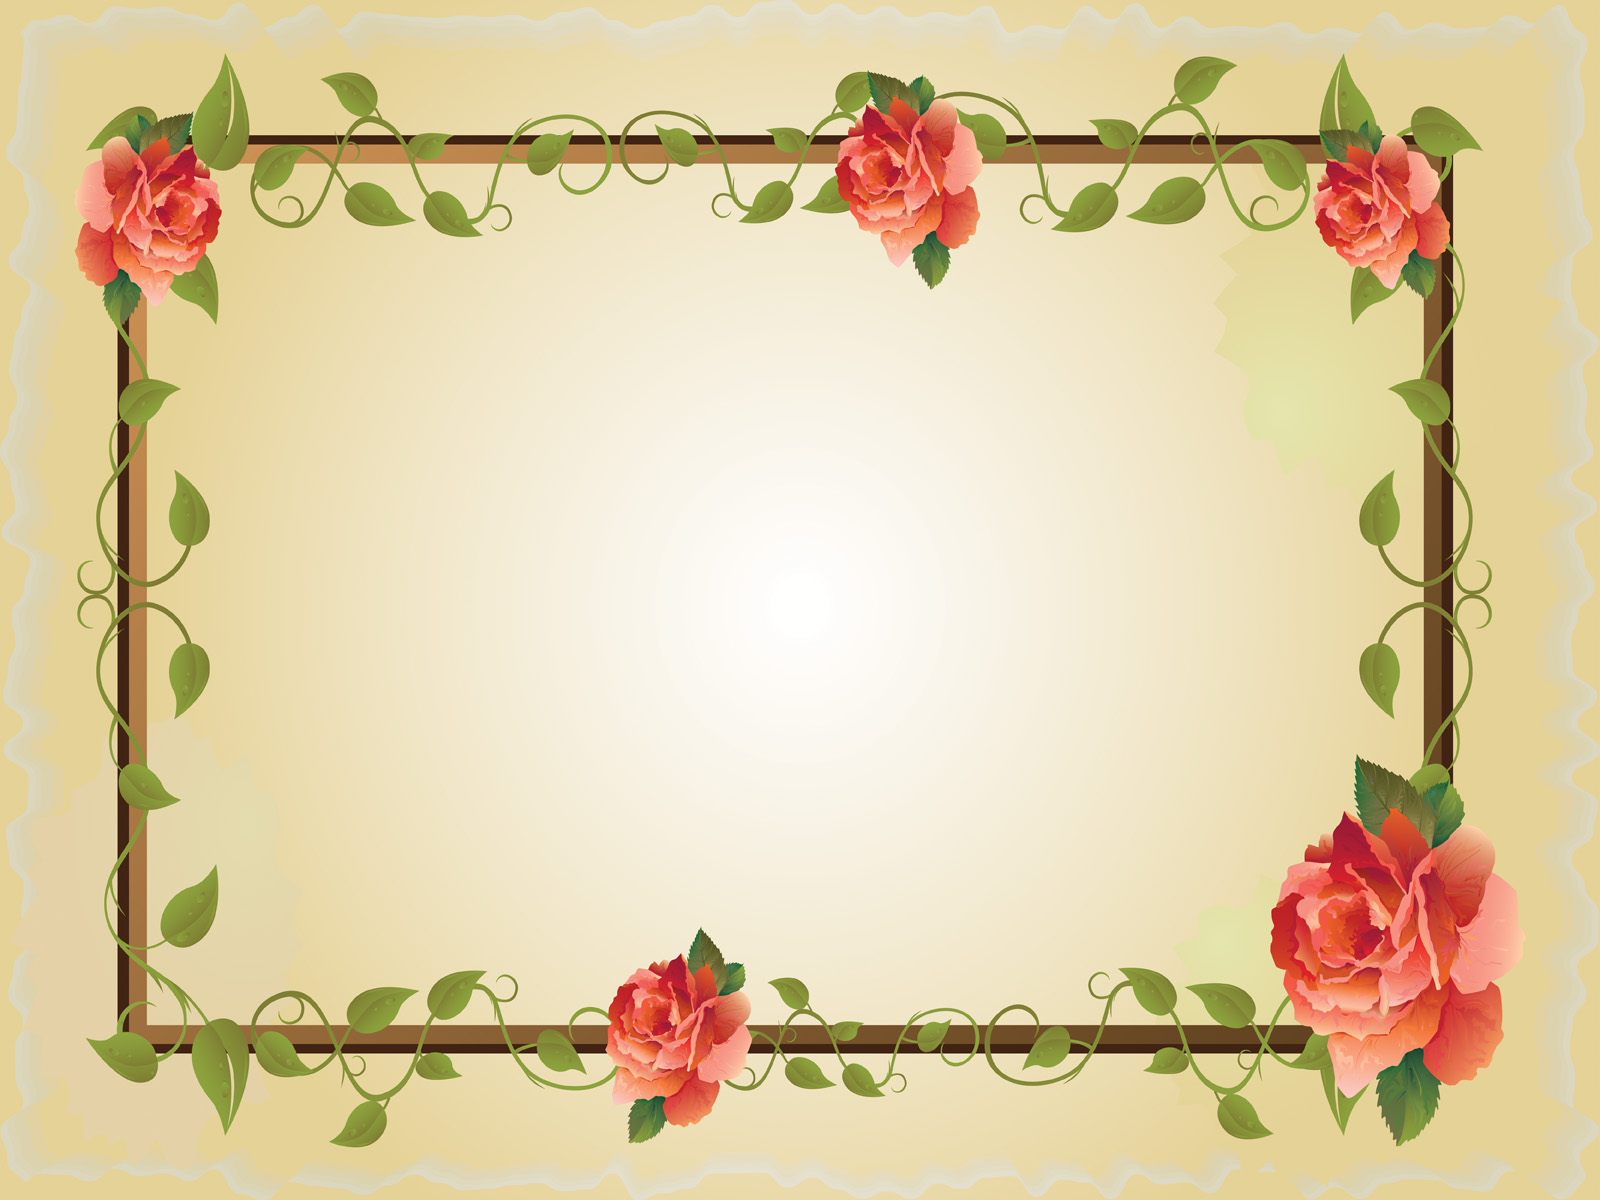 flower template powerpoint - gse.bookbinder.co, Powerpoint templates